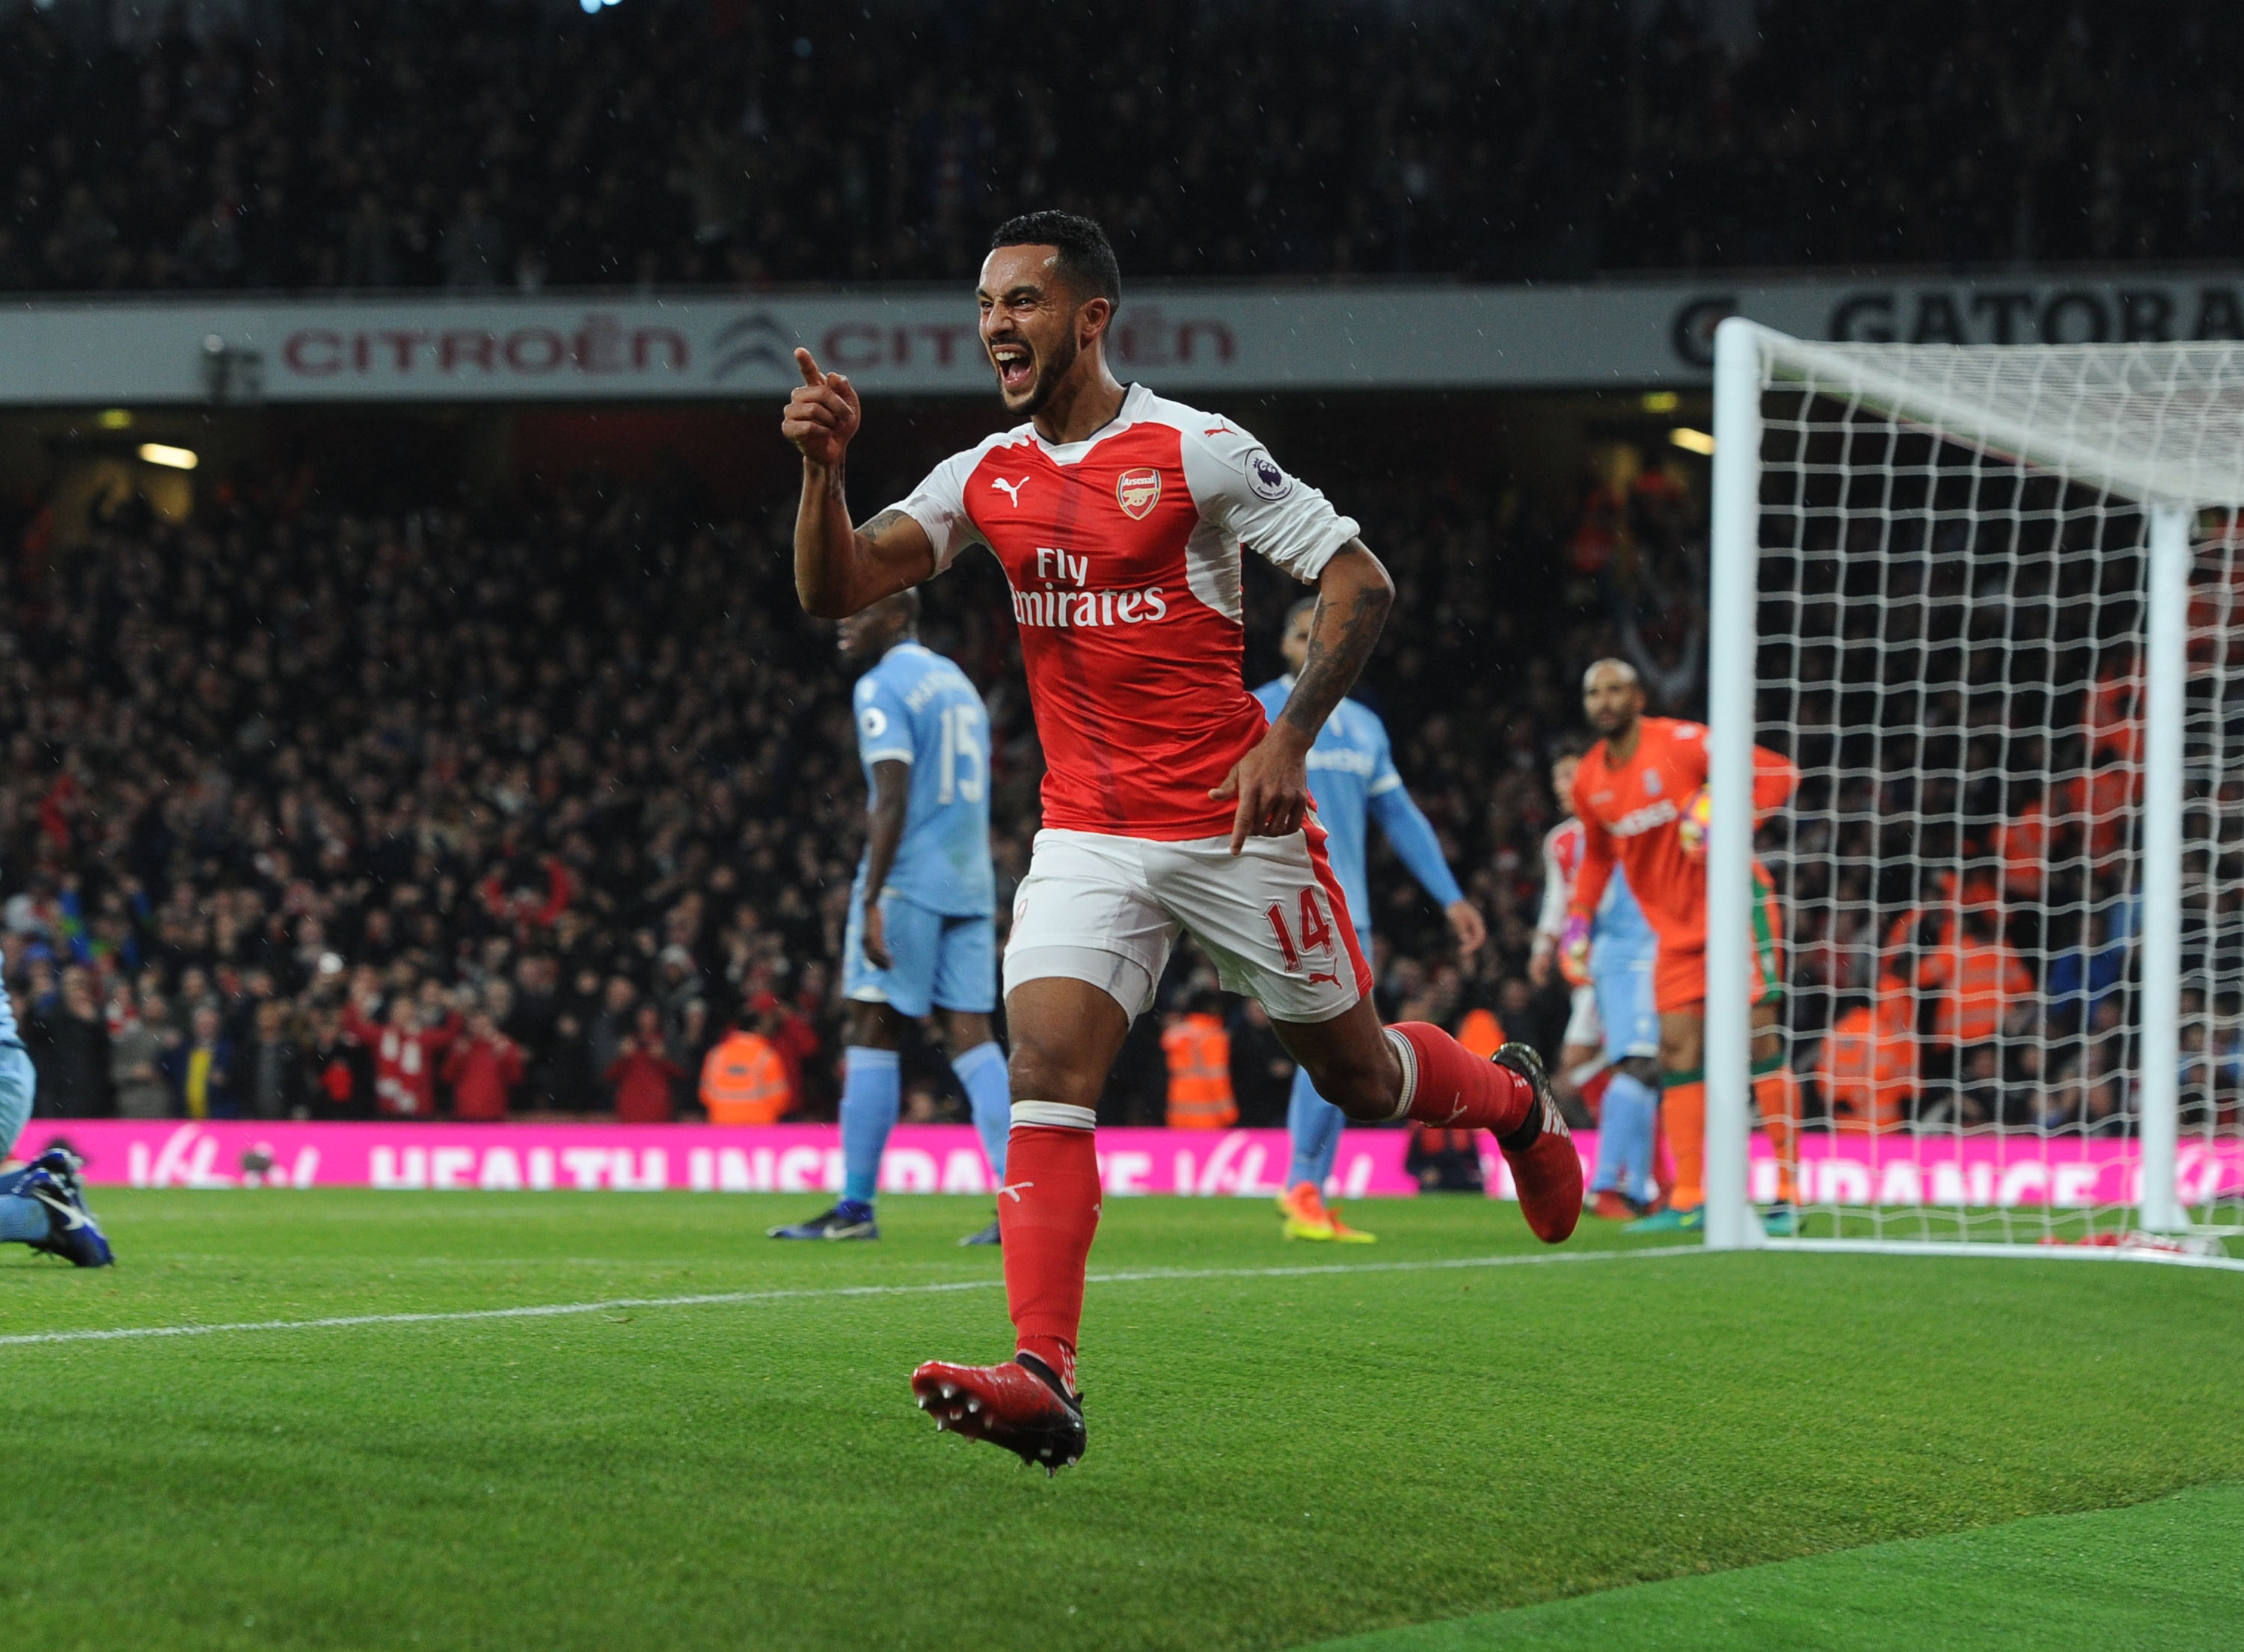 Arsenal's Theo Walcott targeting even more goals after hitting Christmas target